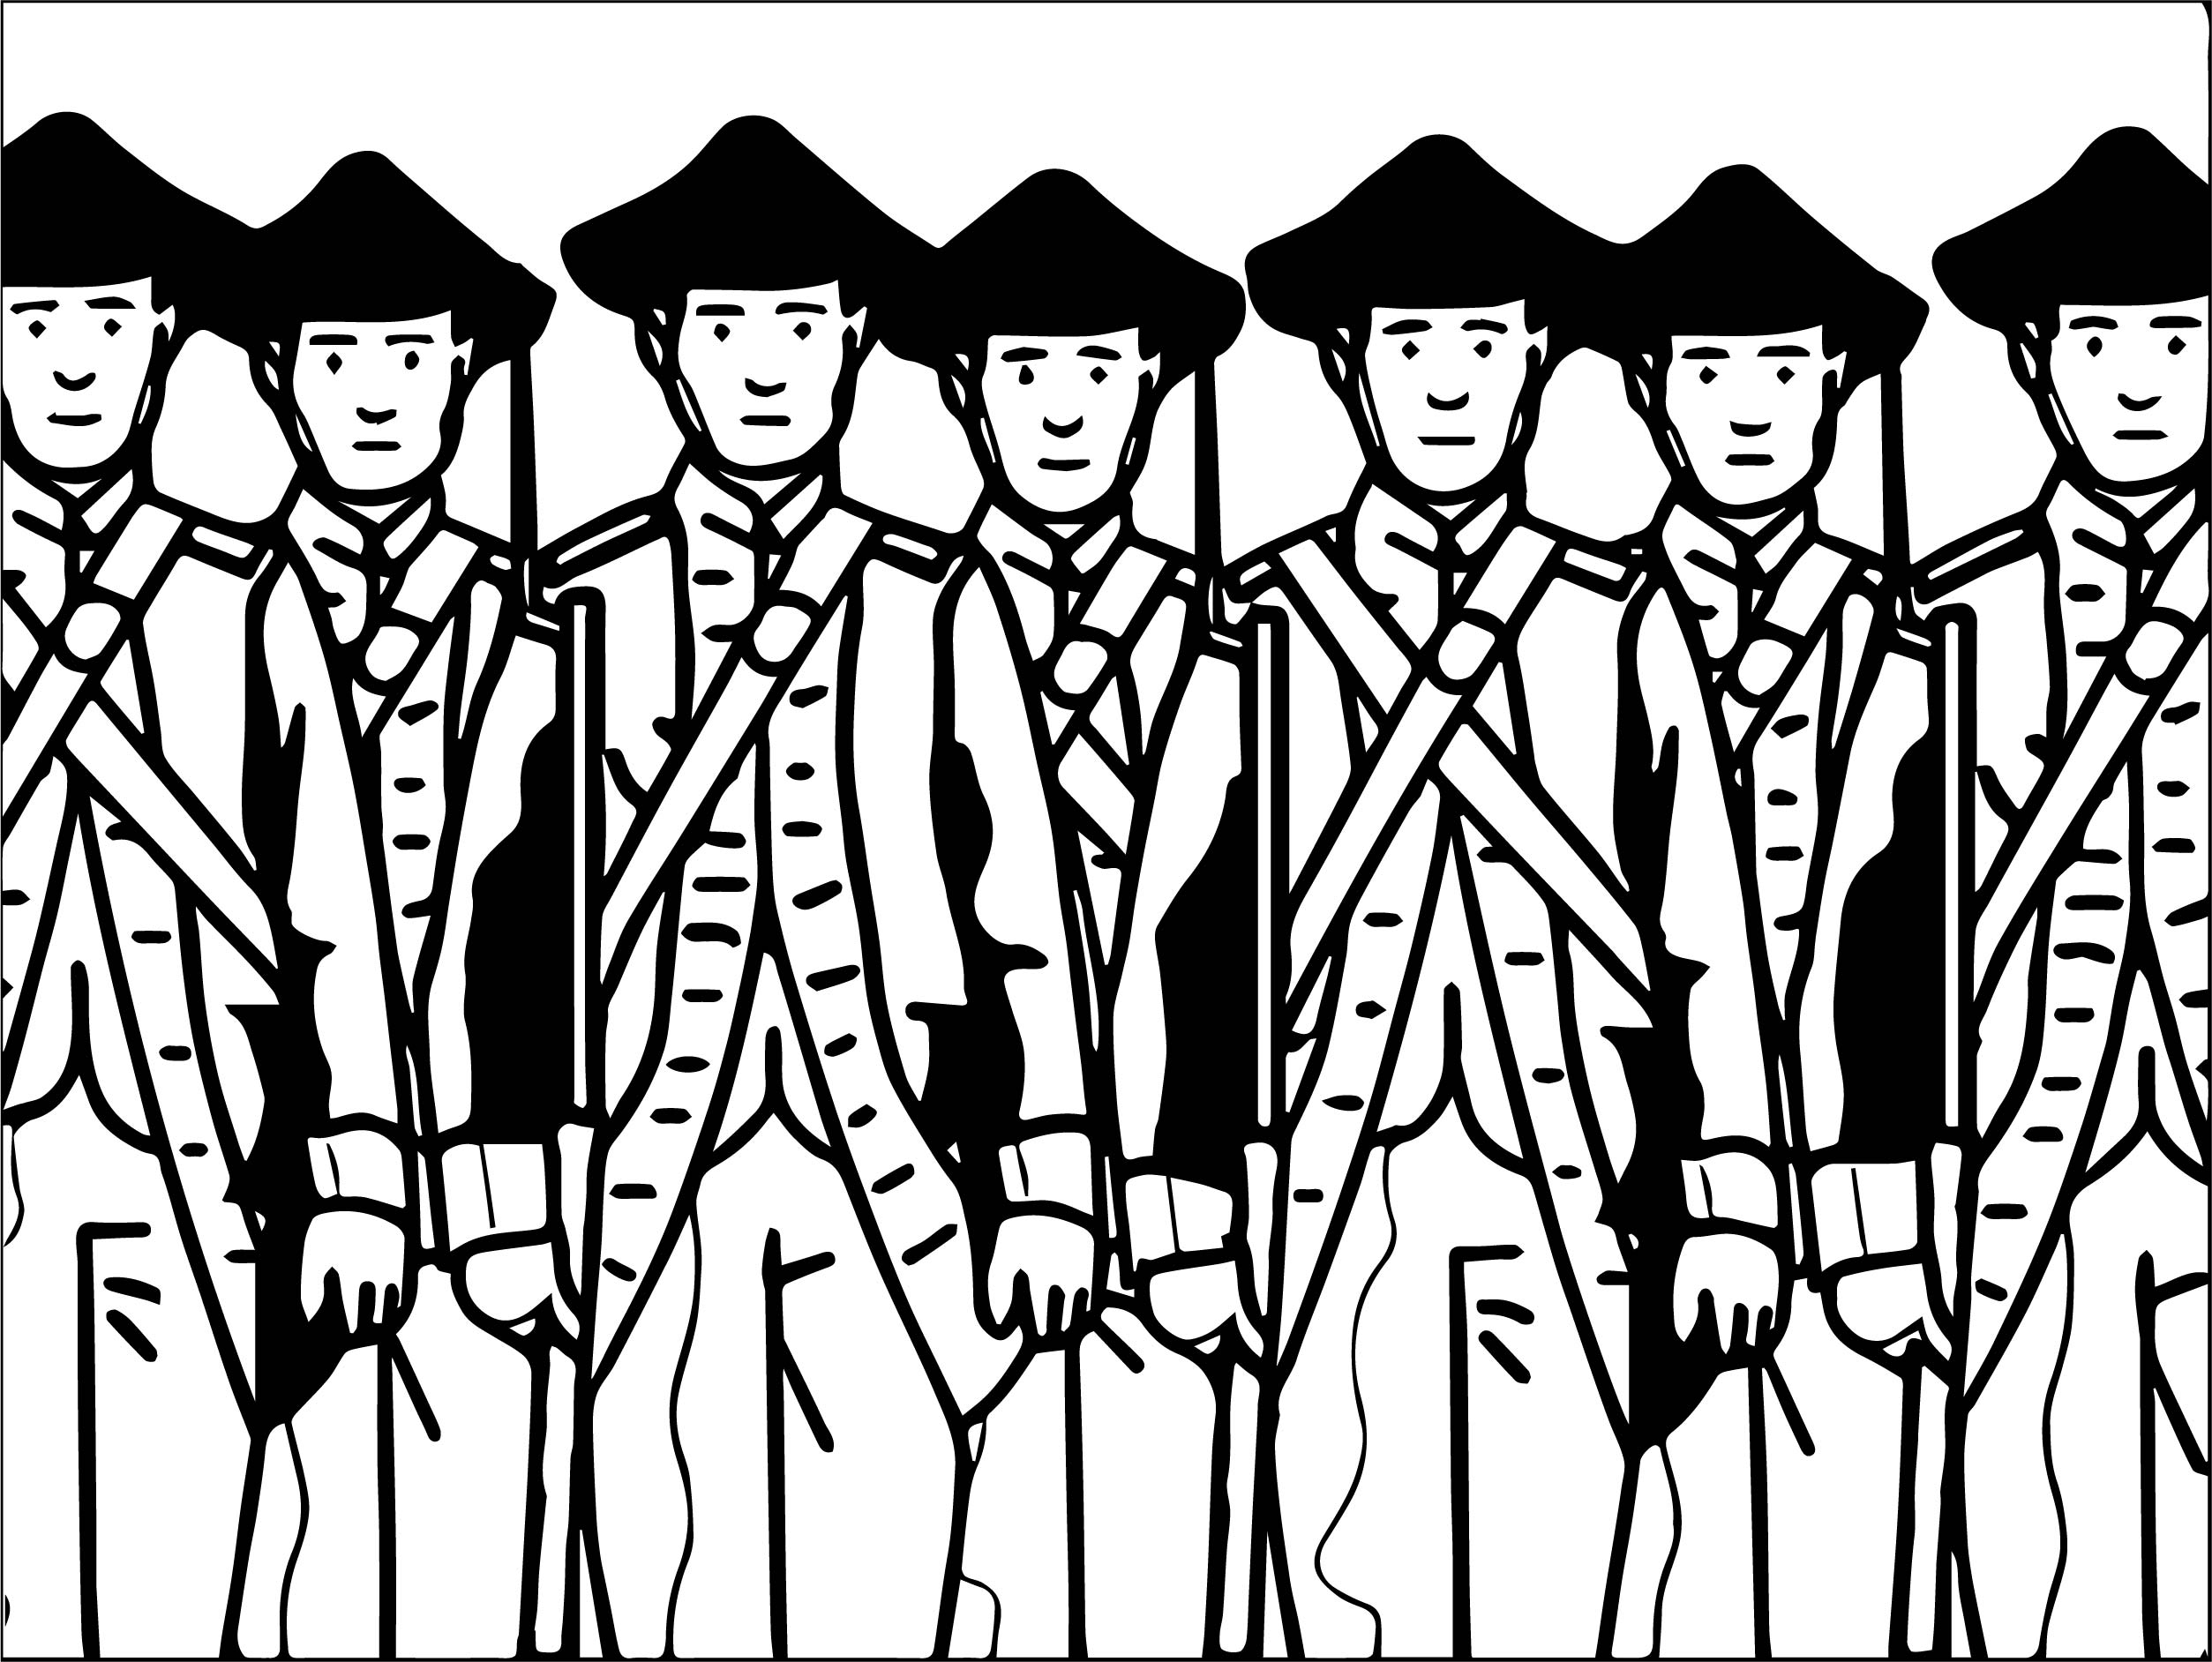 American Revolution All Soldier Coloring Page